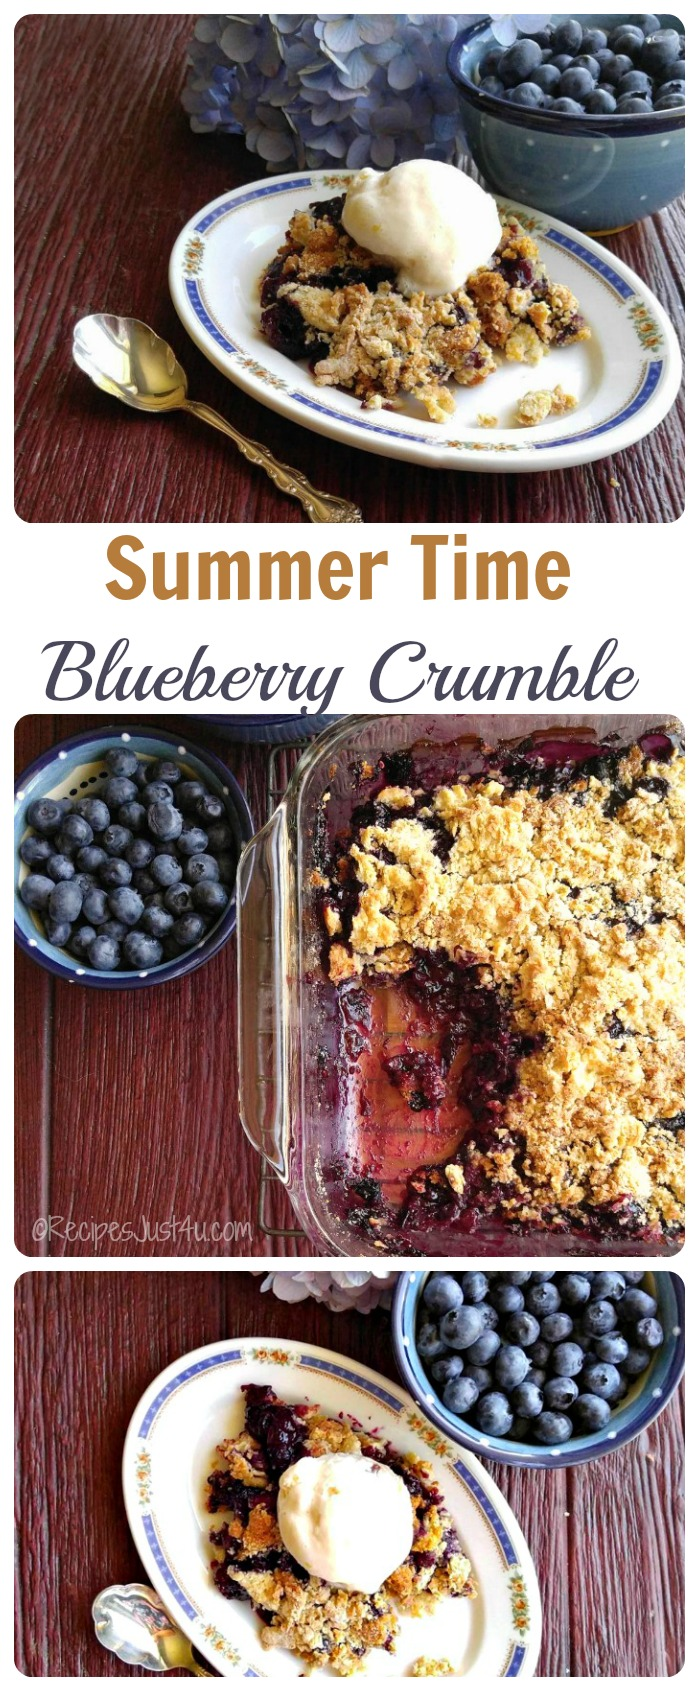 This delicious blueberry crumble is the perfect summer time comfort food treat. It is so easy to make and just scrumptious - recipesjust4u.com